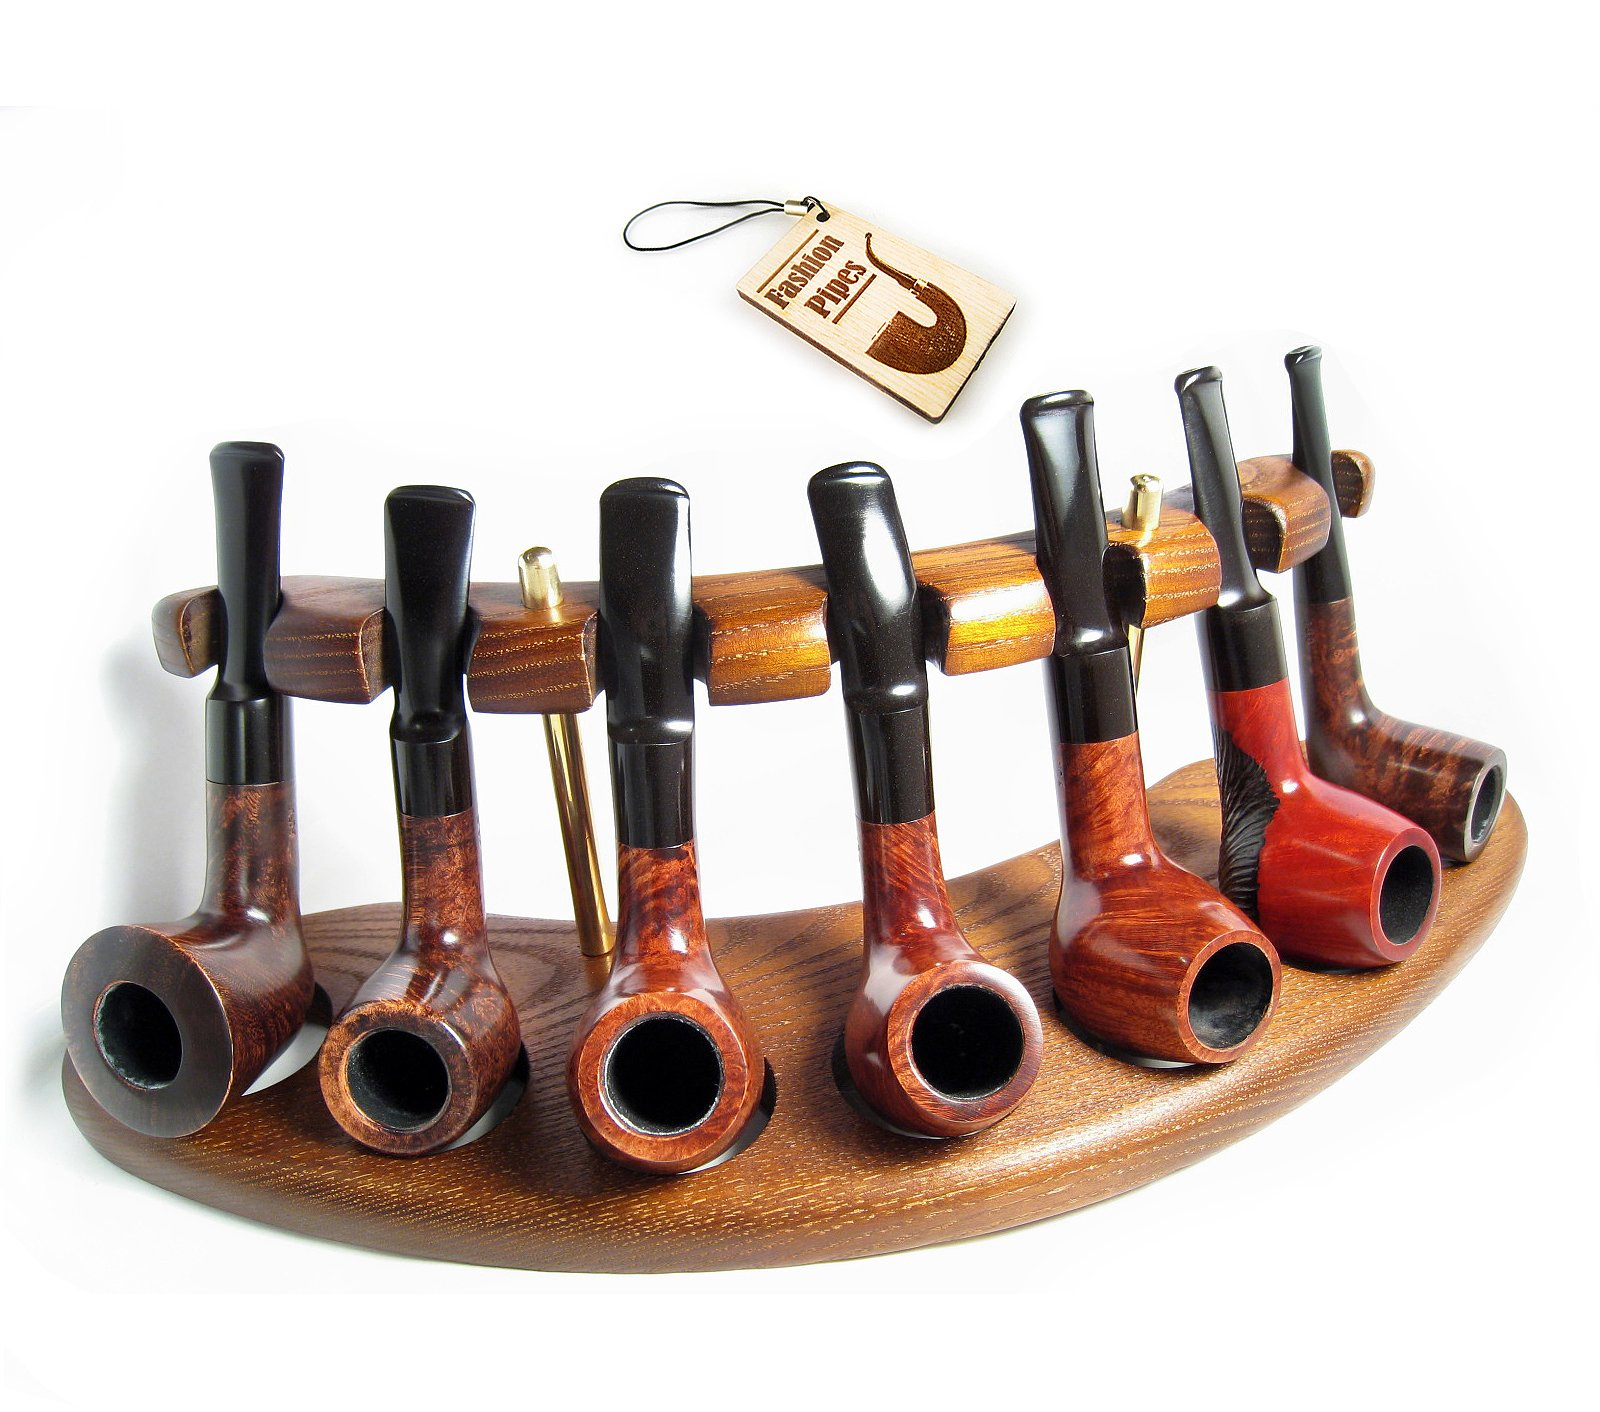 New Wooden Pipe Stand Rack Holder for 7 Tobacco Pipes. Handcrafted (7) by Fashion Pipes